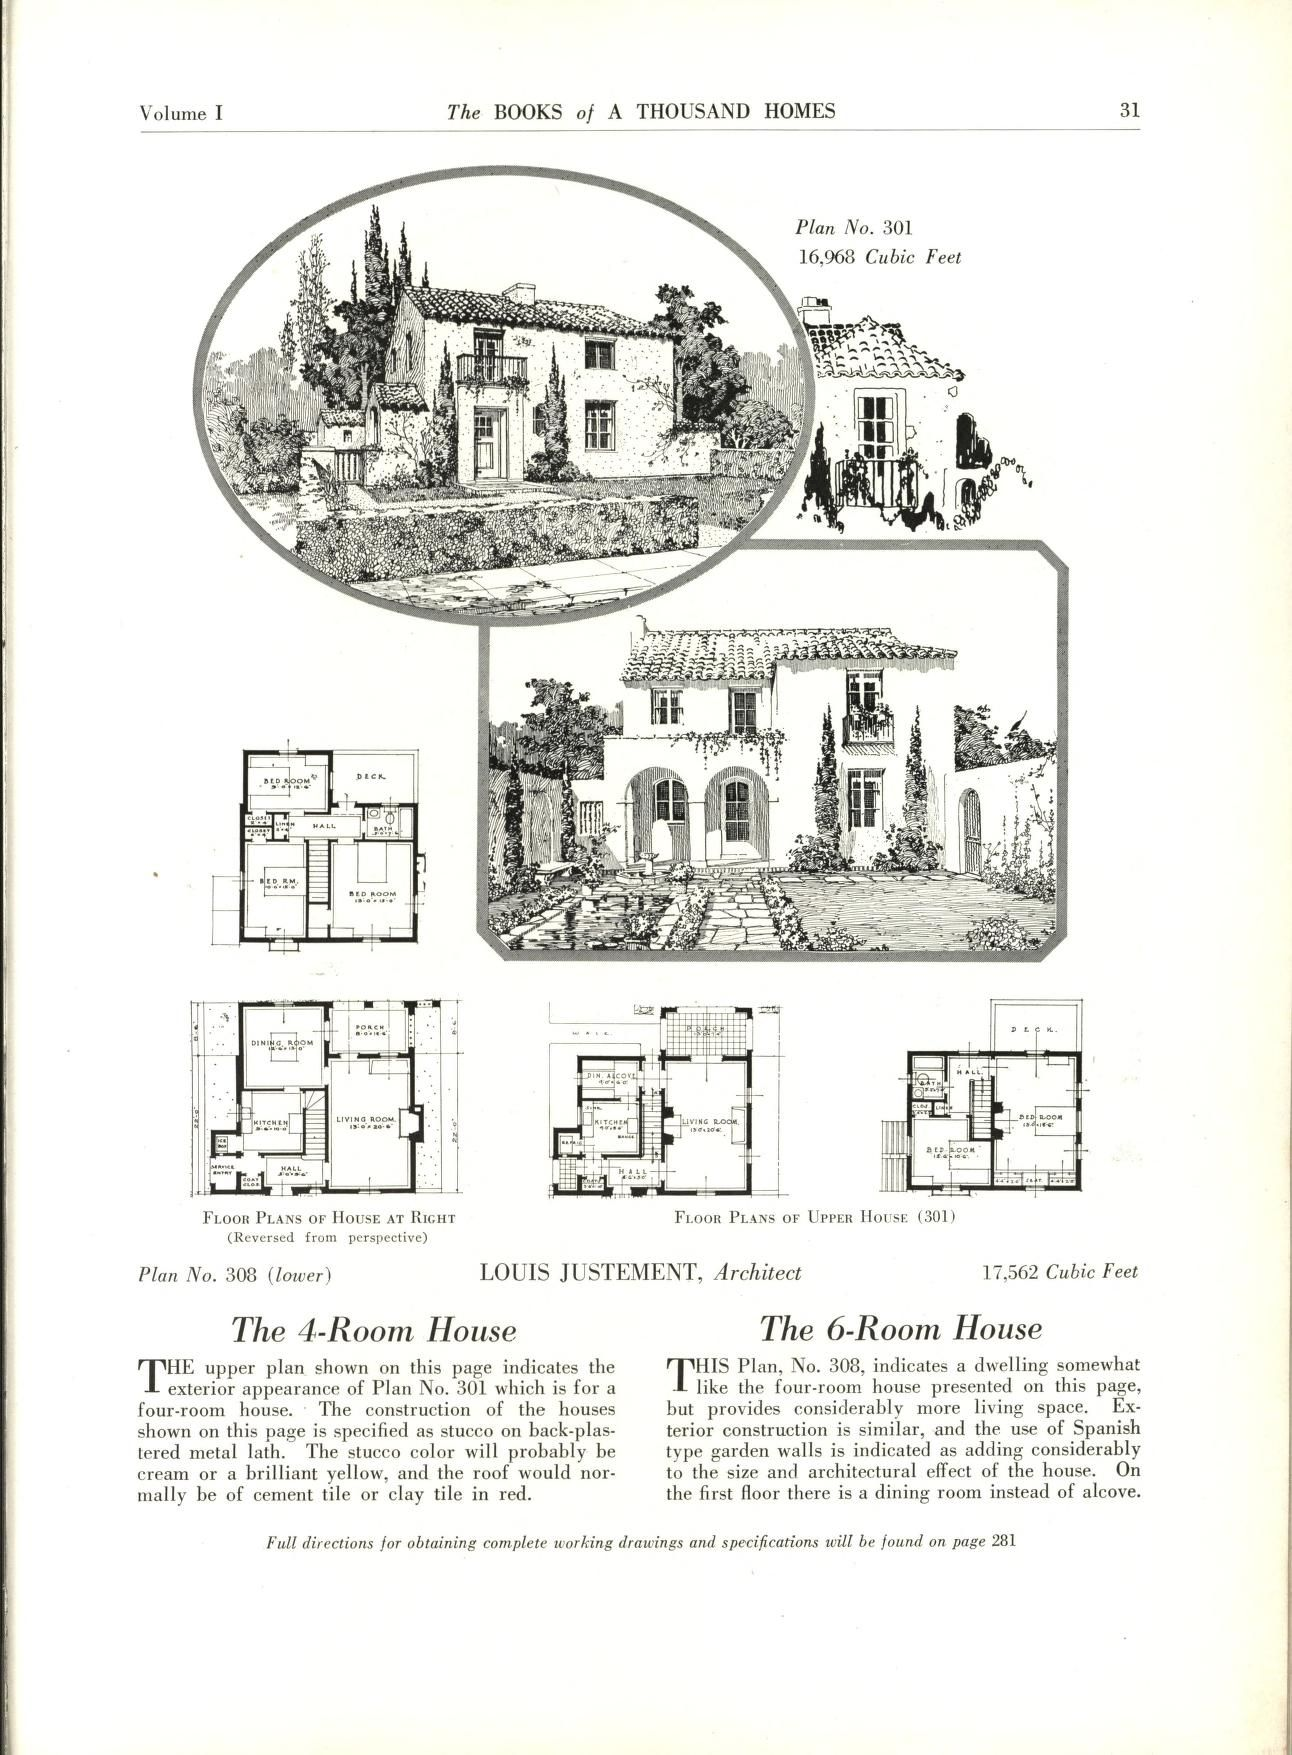 The books of a thousand homes, vol. 1 | Design & Architecture ...